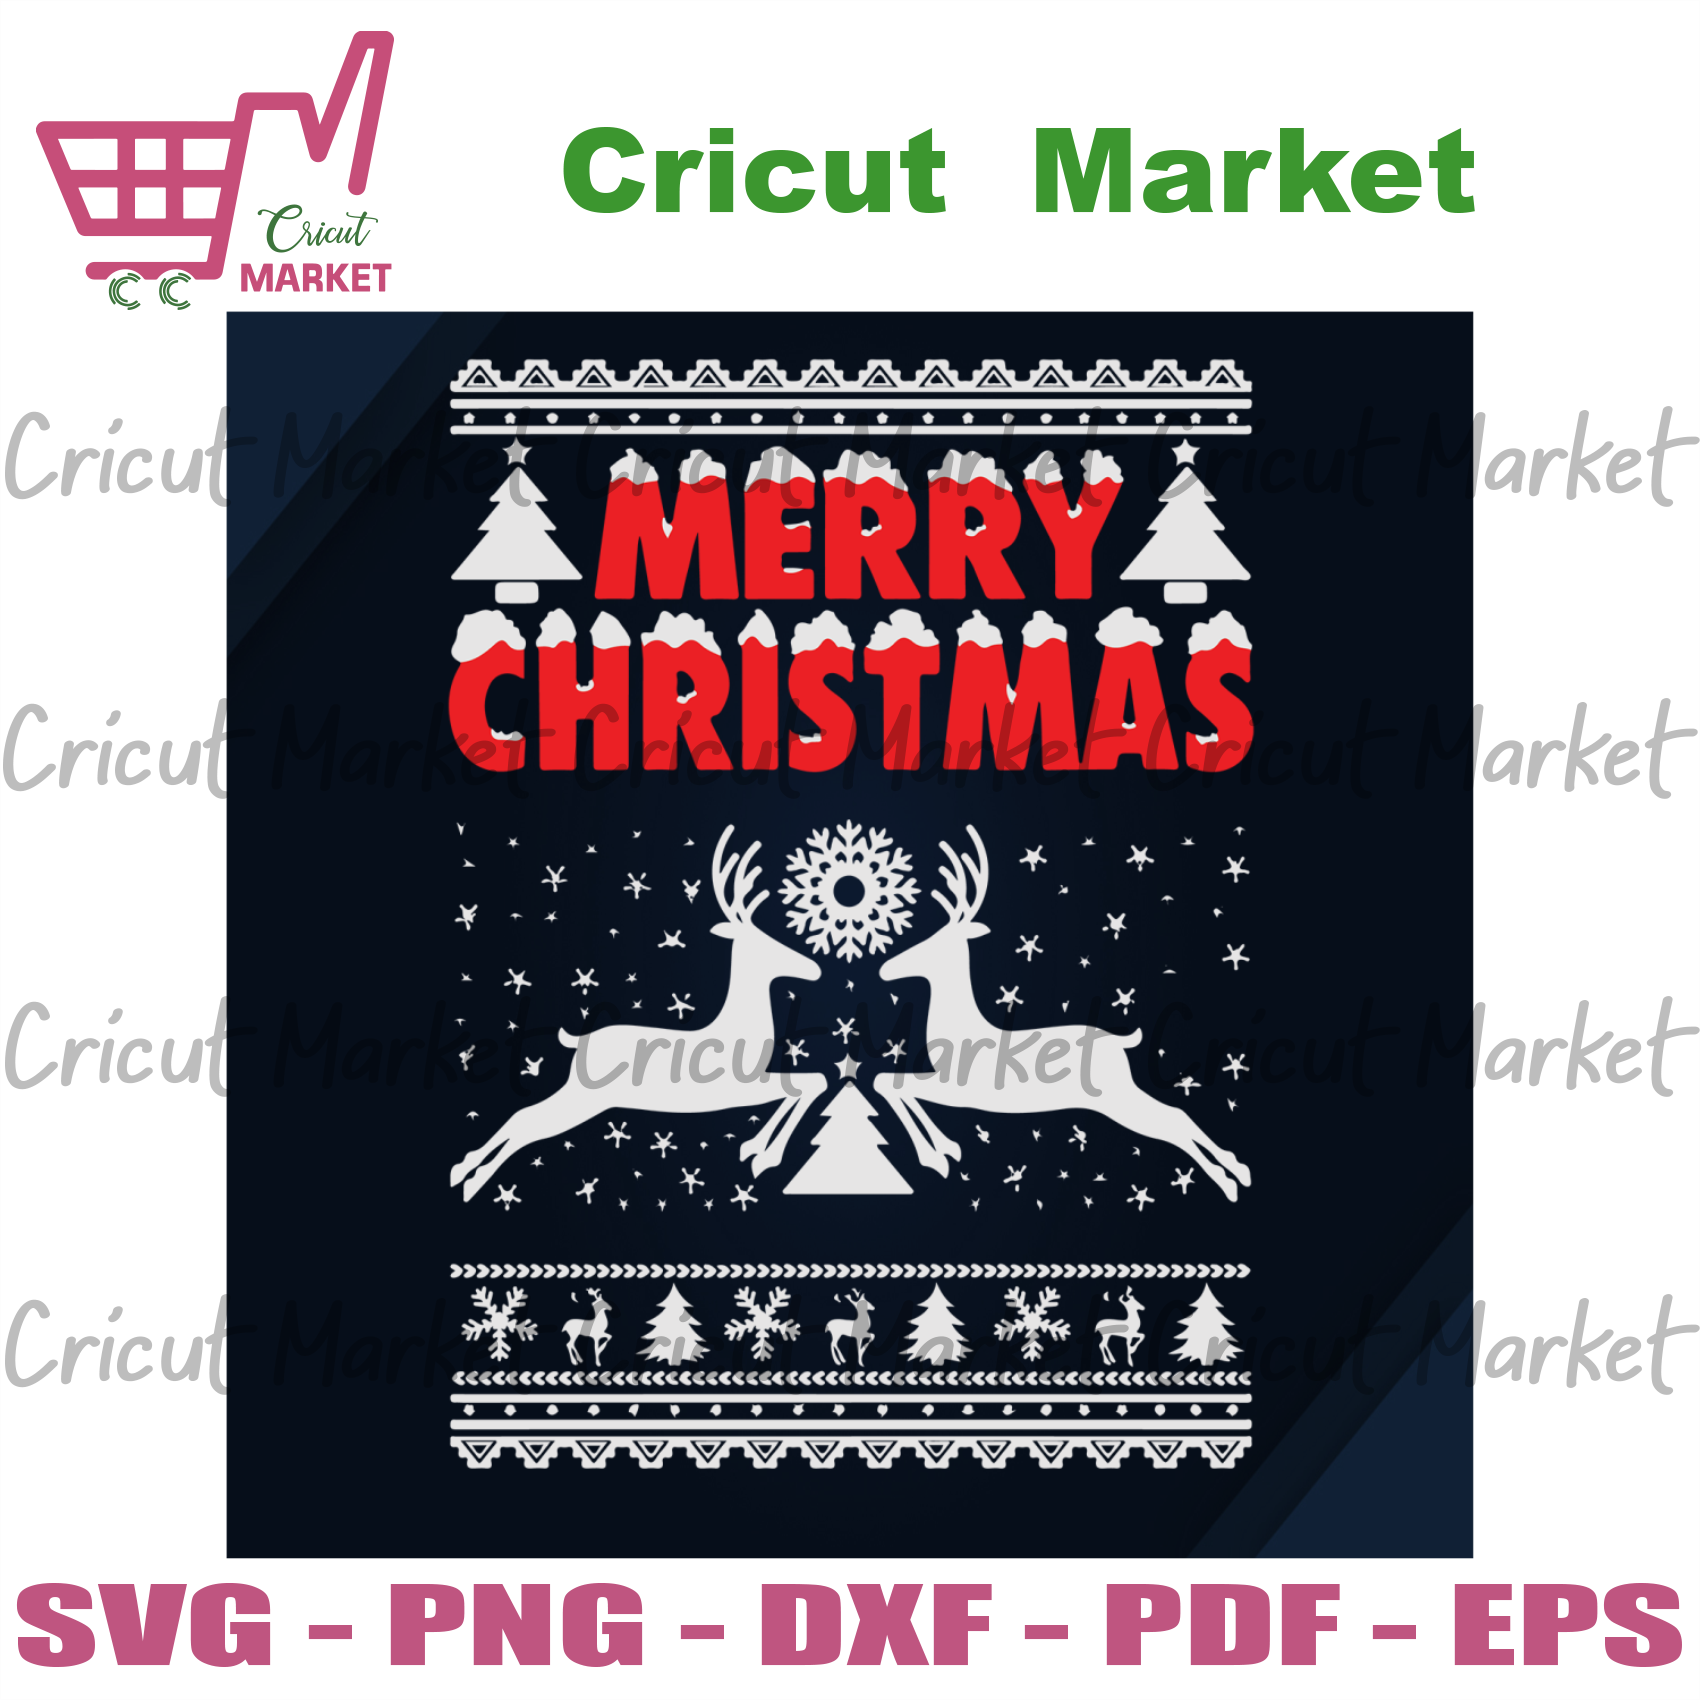 Merry Christmas, Christmas Svg, Reindeer Svg, Christmas Reindeer Svg, Reindeer Lovers, Christmas shirt svg, Merry Christmas, Christmas pattern, Christmas Party, Funny Christmas, Xmas Gift, Ch